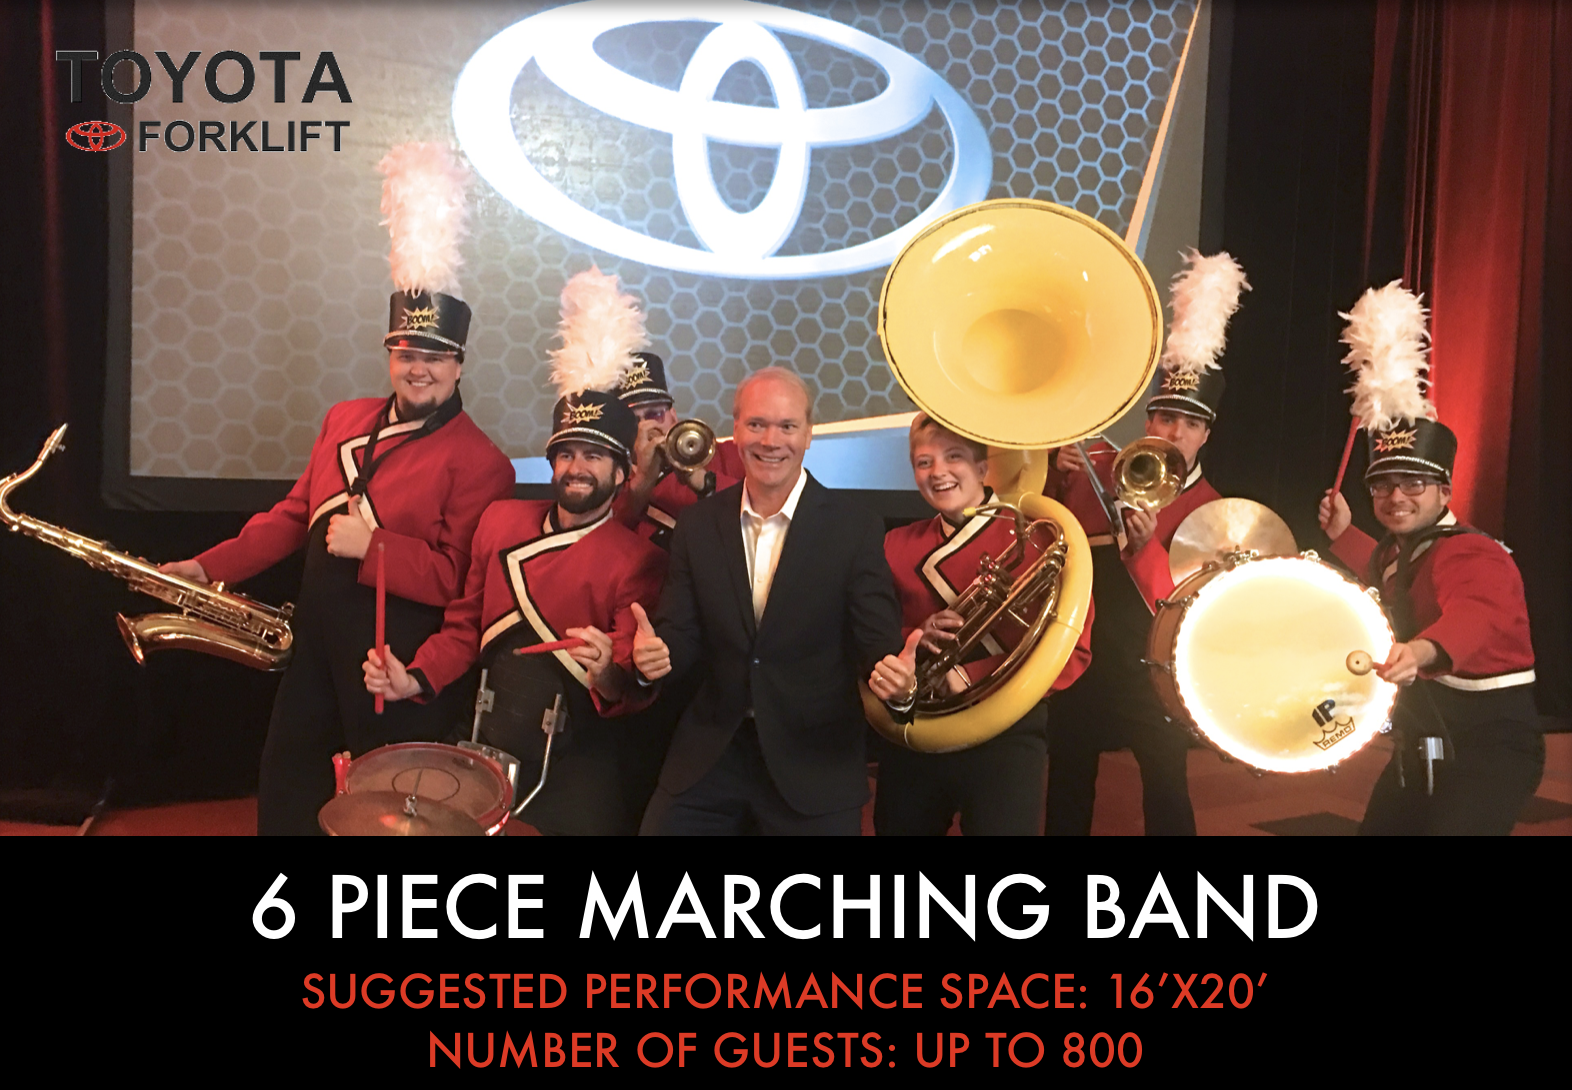 6 piece Marching Band